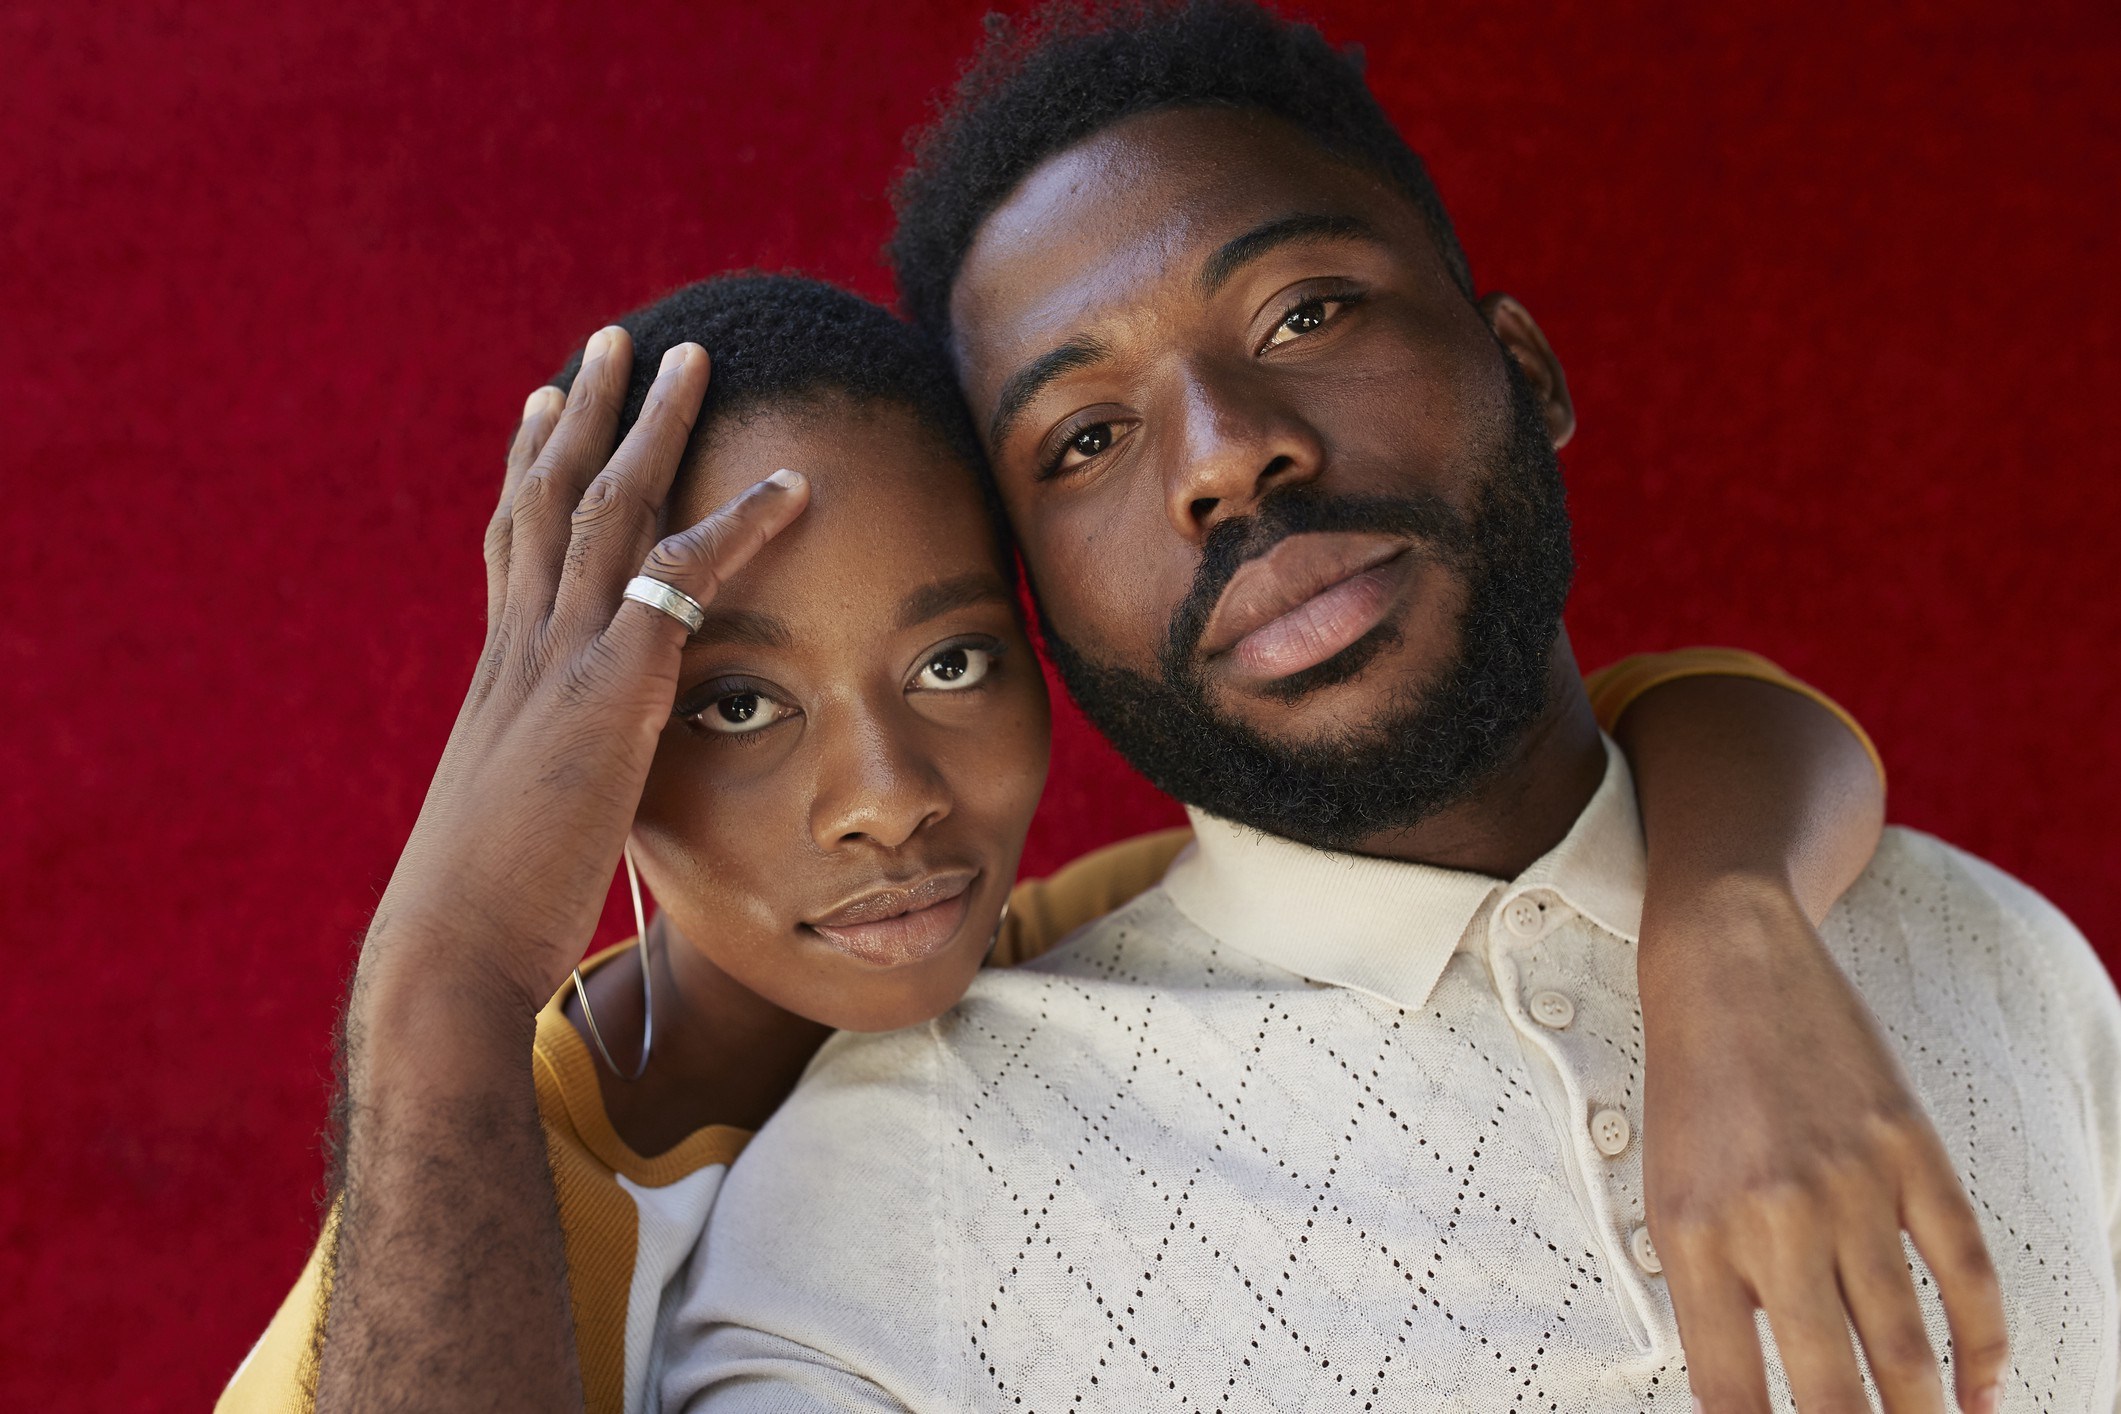 Black man and woman posing together in front of a maroon background.